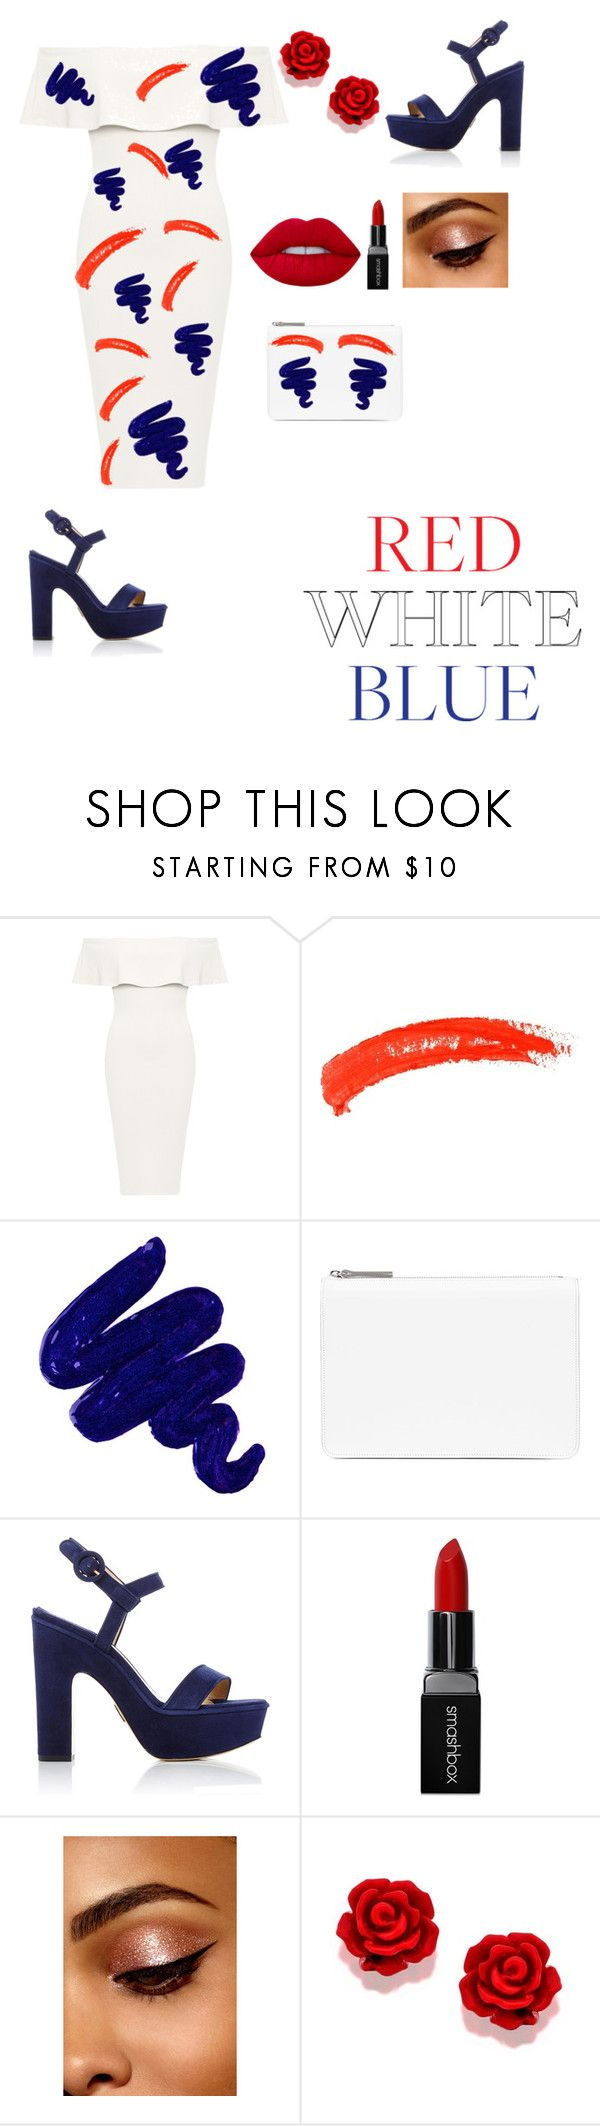 """Untitled #34"" by farahalmazyad ❤ liked on Polyvore featuring WearAll, Topshop, Obsessive Compulsive Cosmetics, Maison Margiela, Paul Andrew and Smashbox"